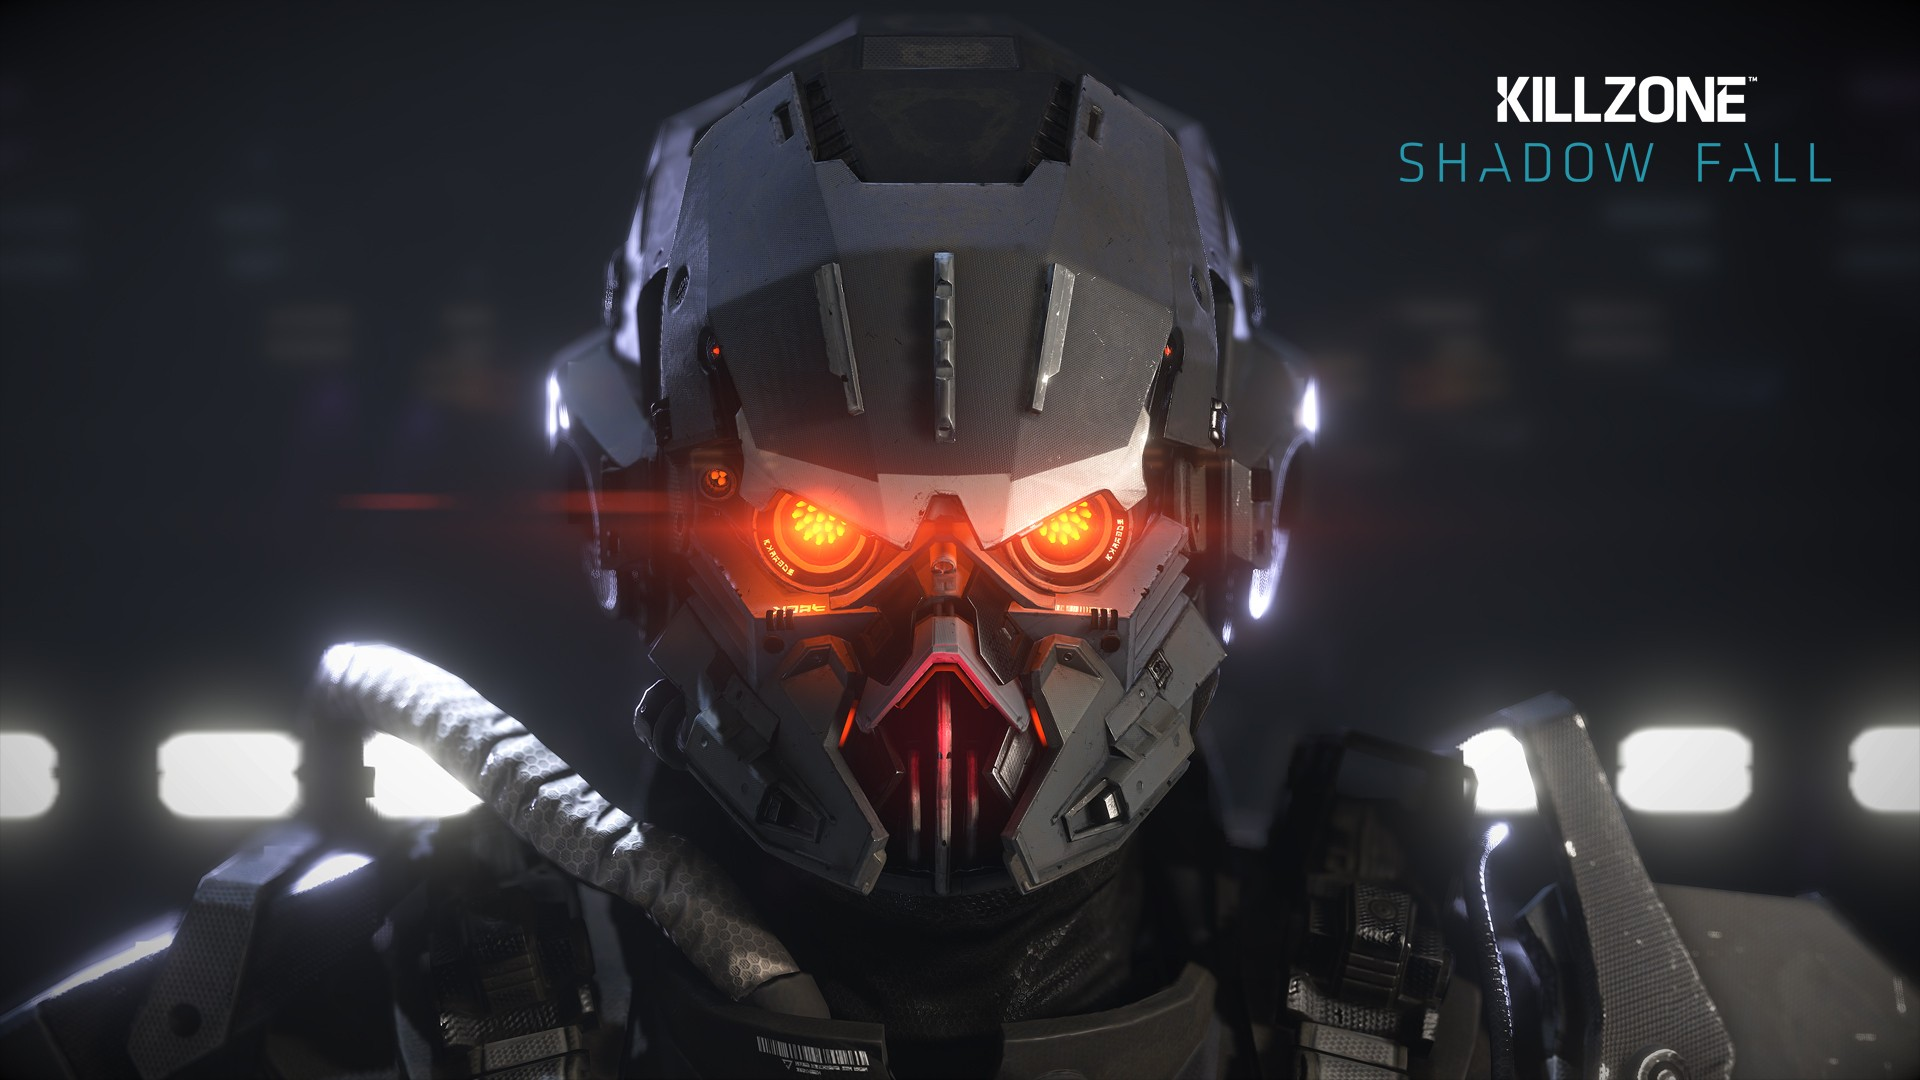 Wallpaper Killzone Shadow Fall 55 Killzone Shadow Fall Hd Wallpapers Background Images